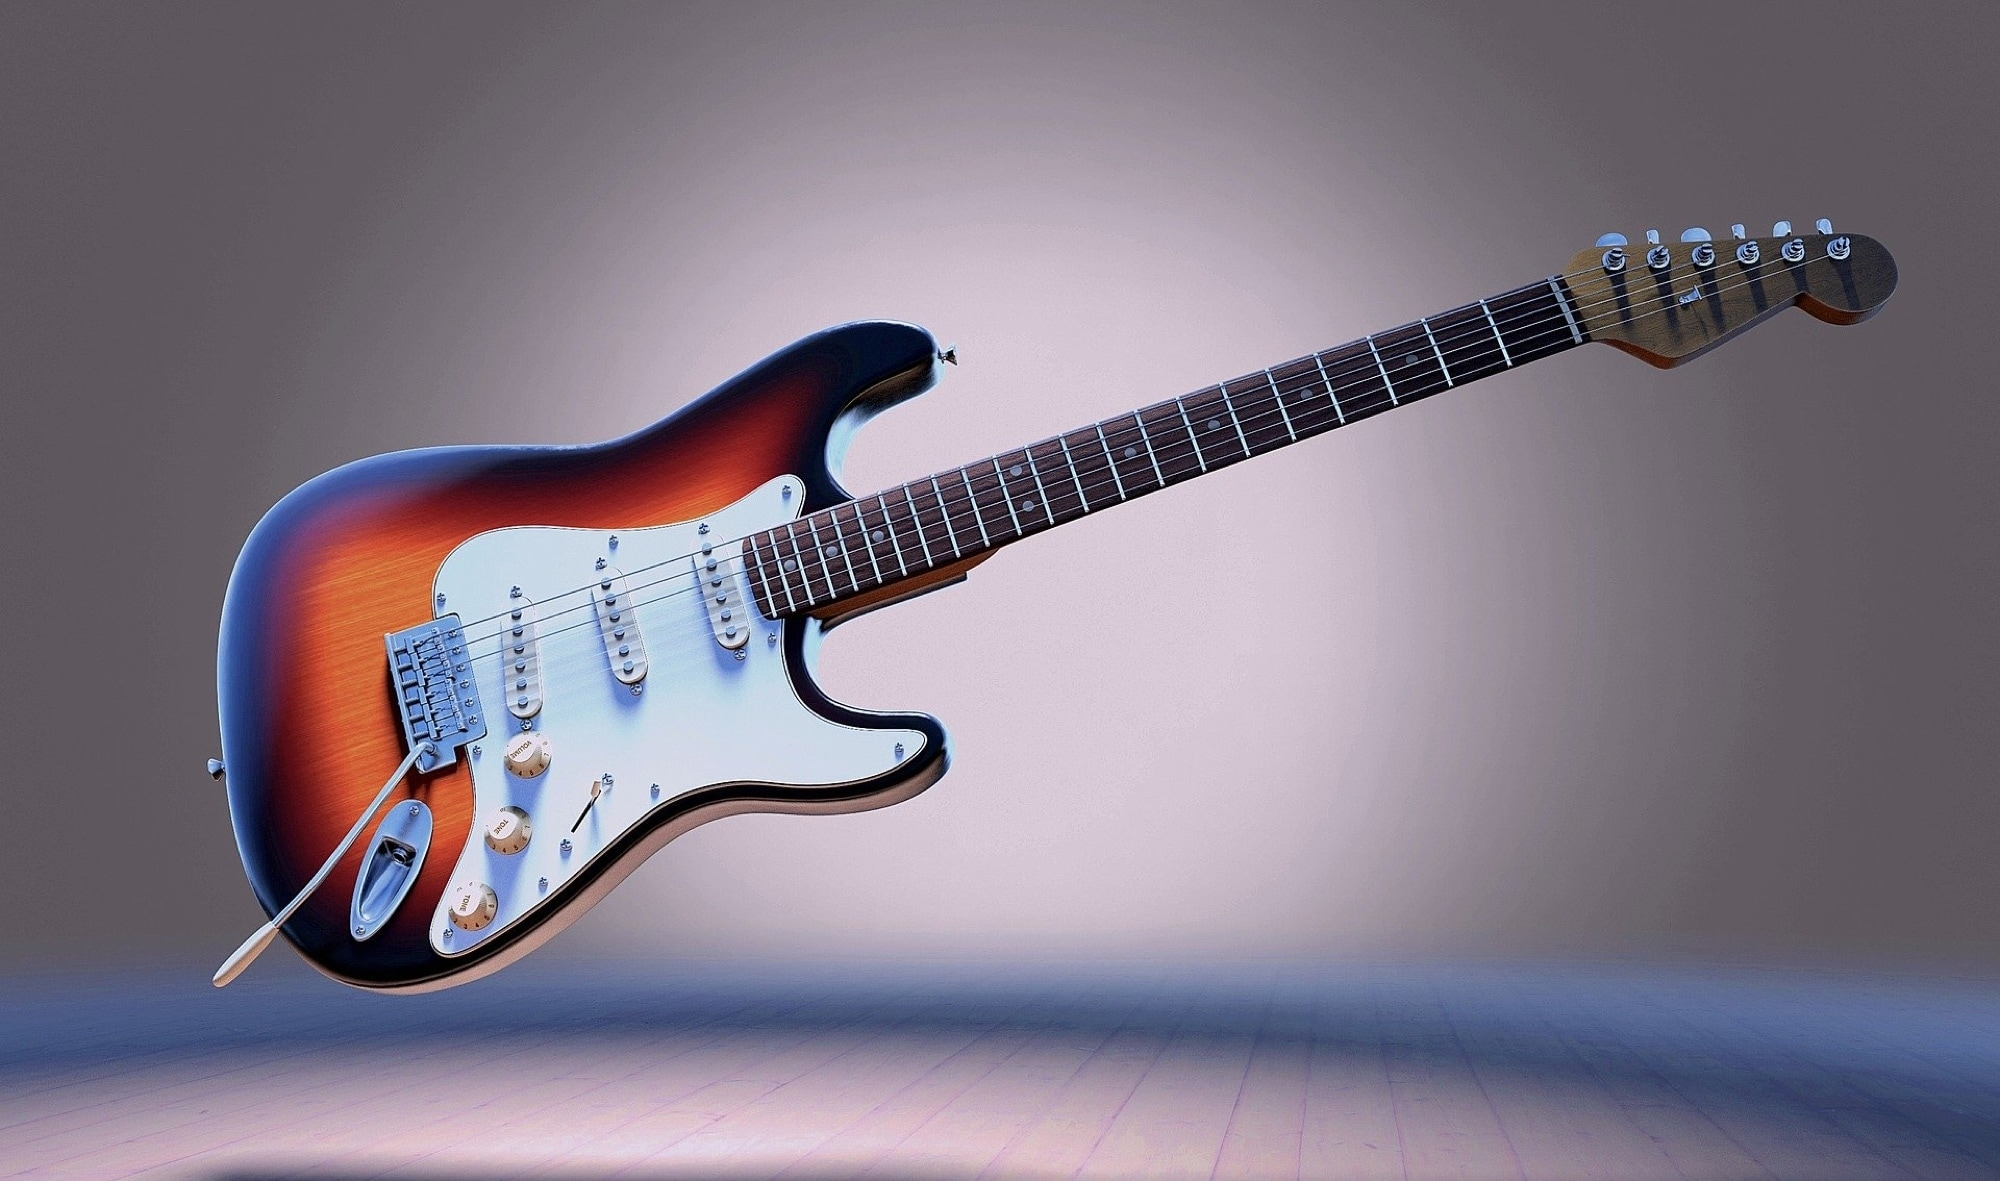 Apple TV Apps for Learning to Play Guitar - Electric Guitar